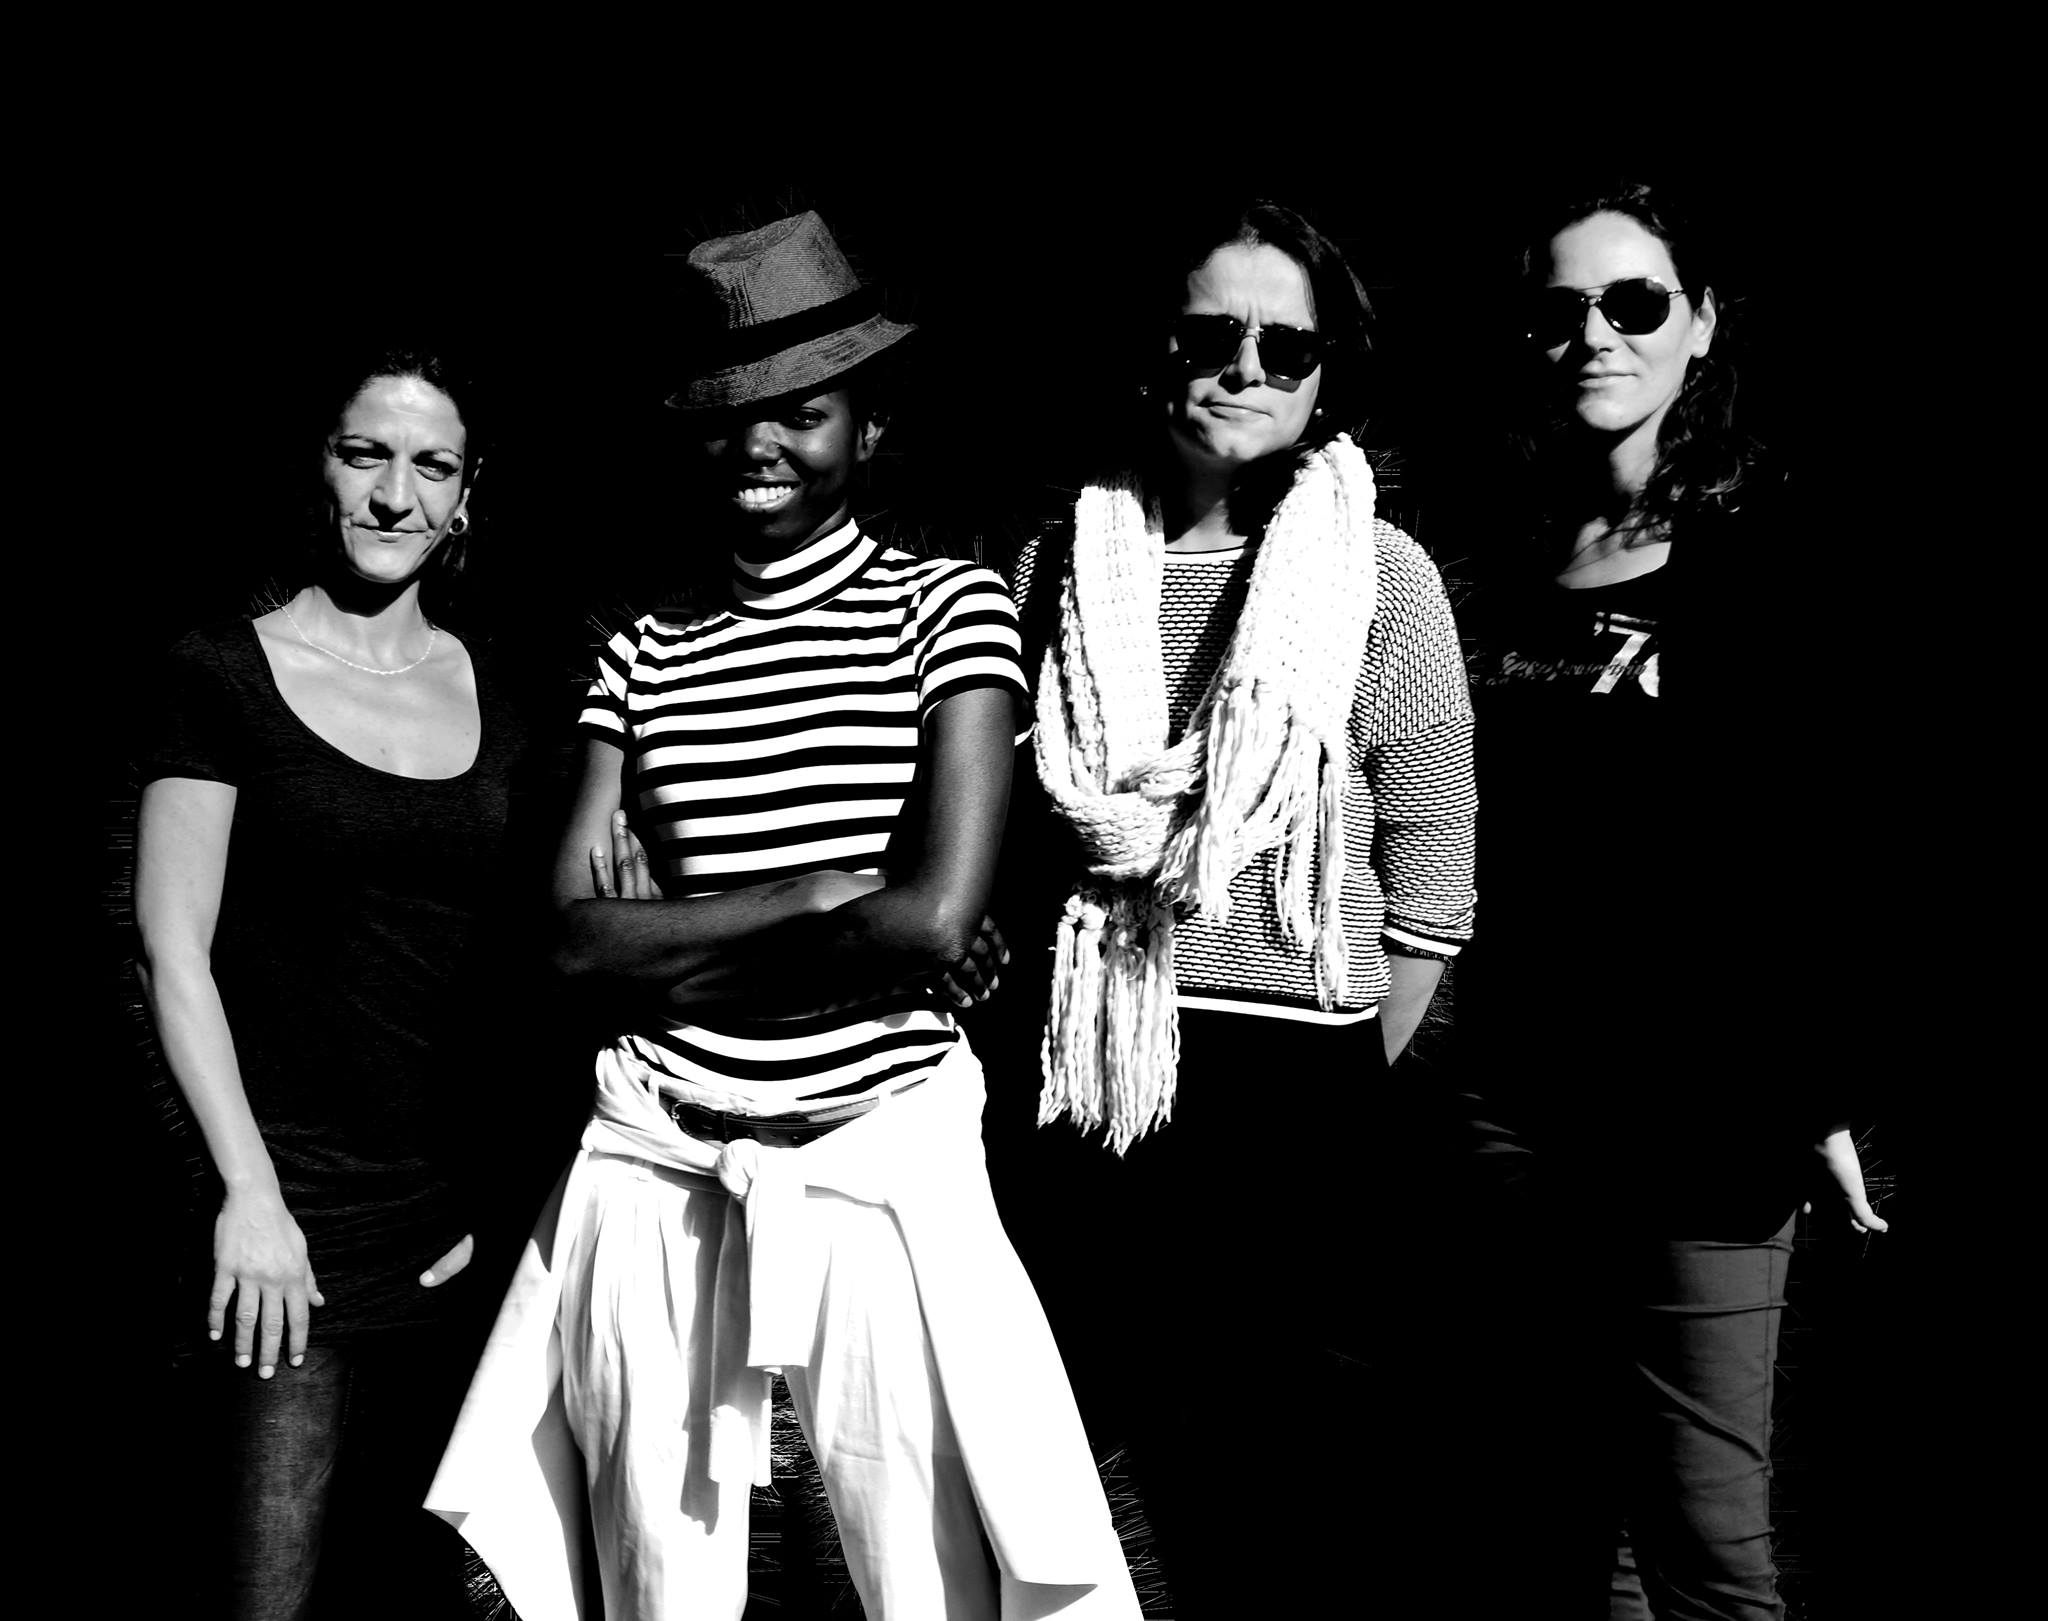 Faby DubAkom, Mathilde Caglione, Aurélie, Agullo - Photo by WePresent